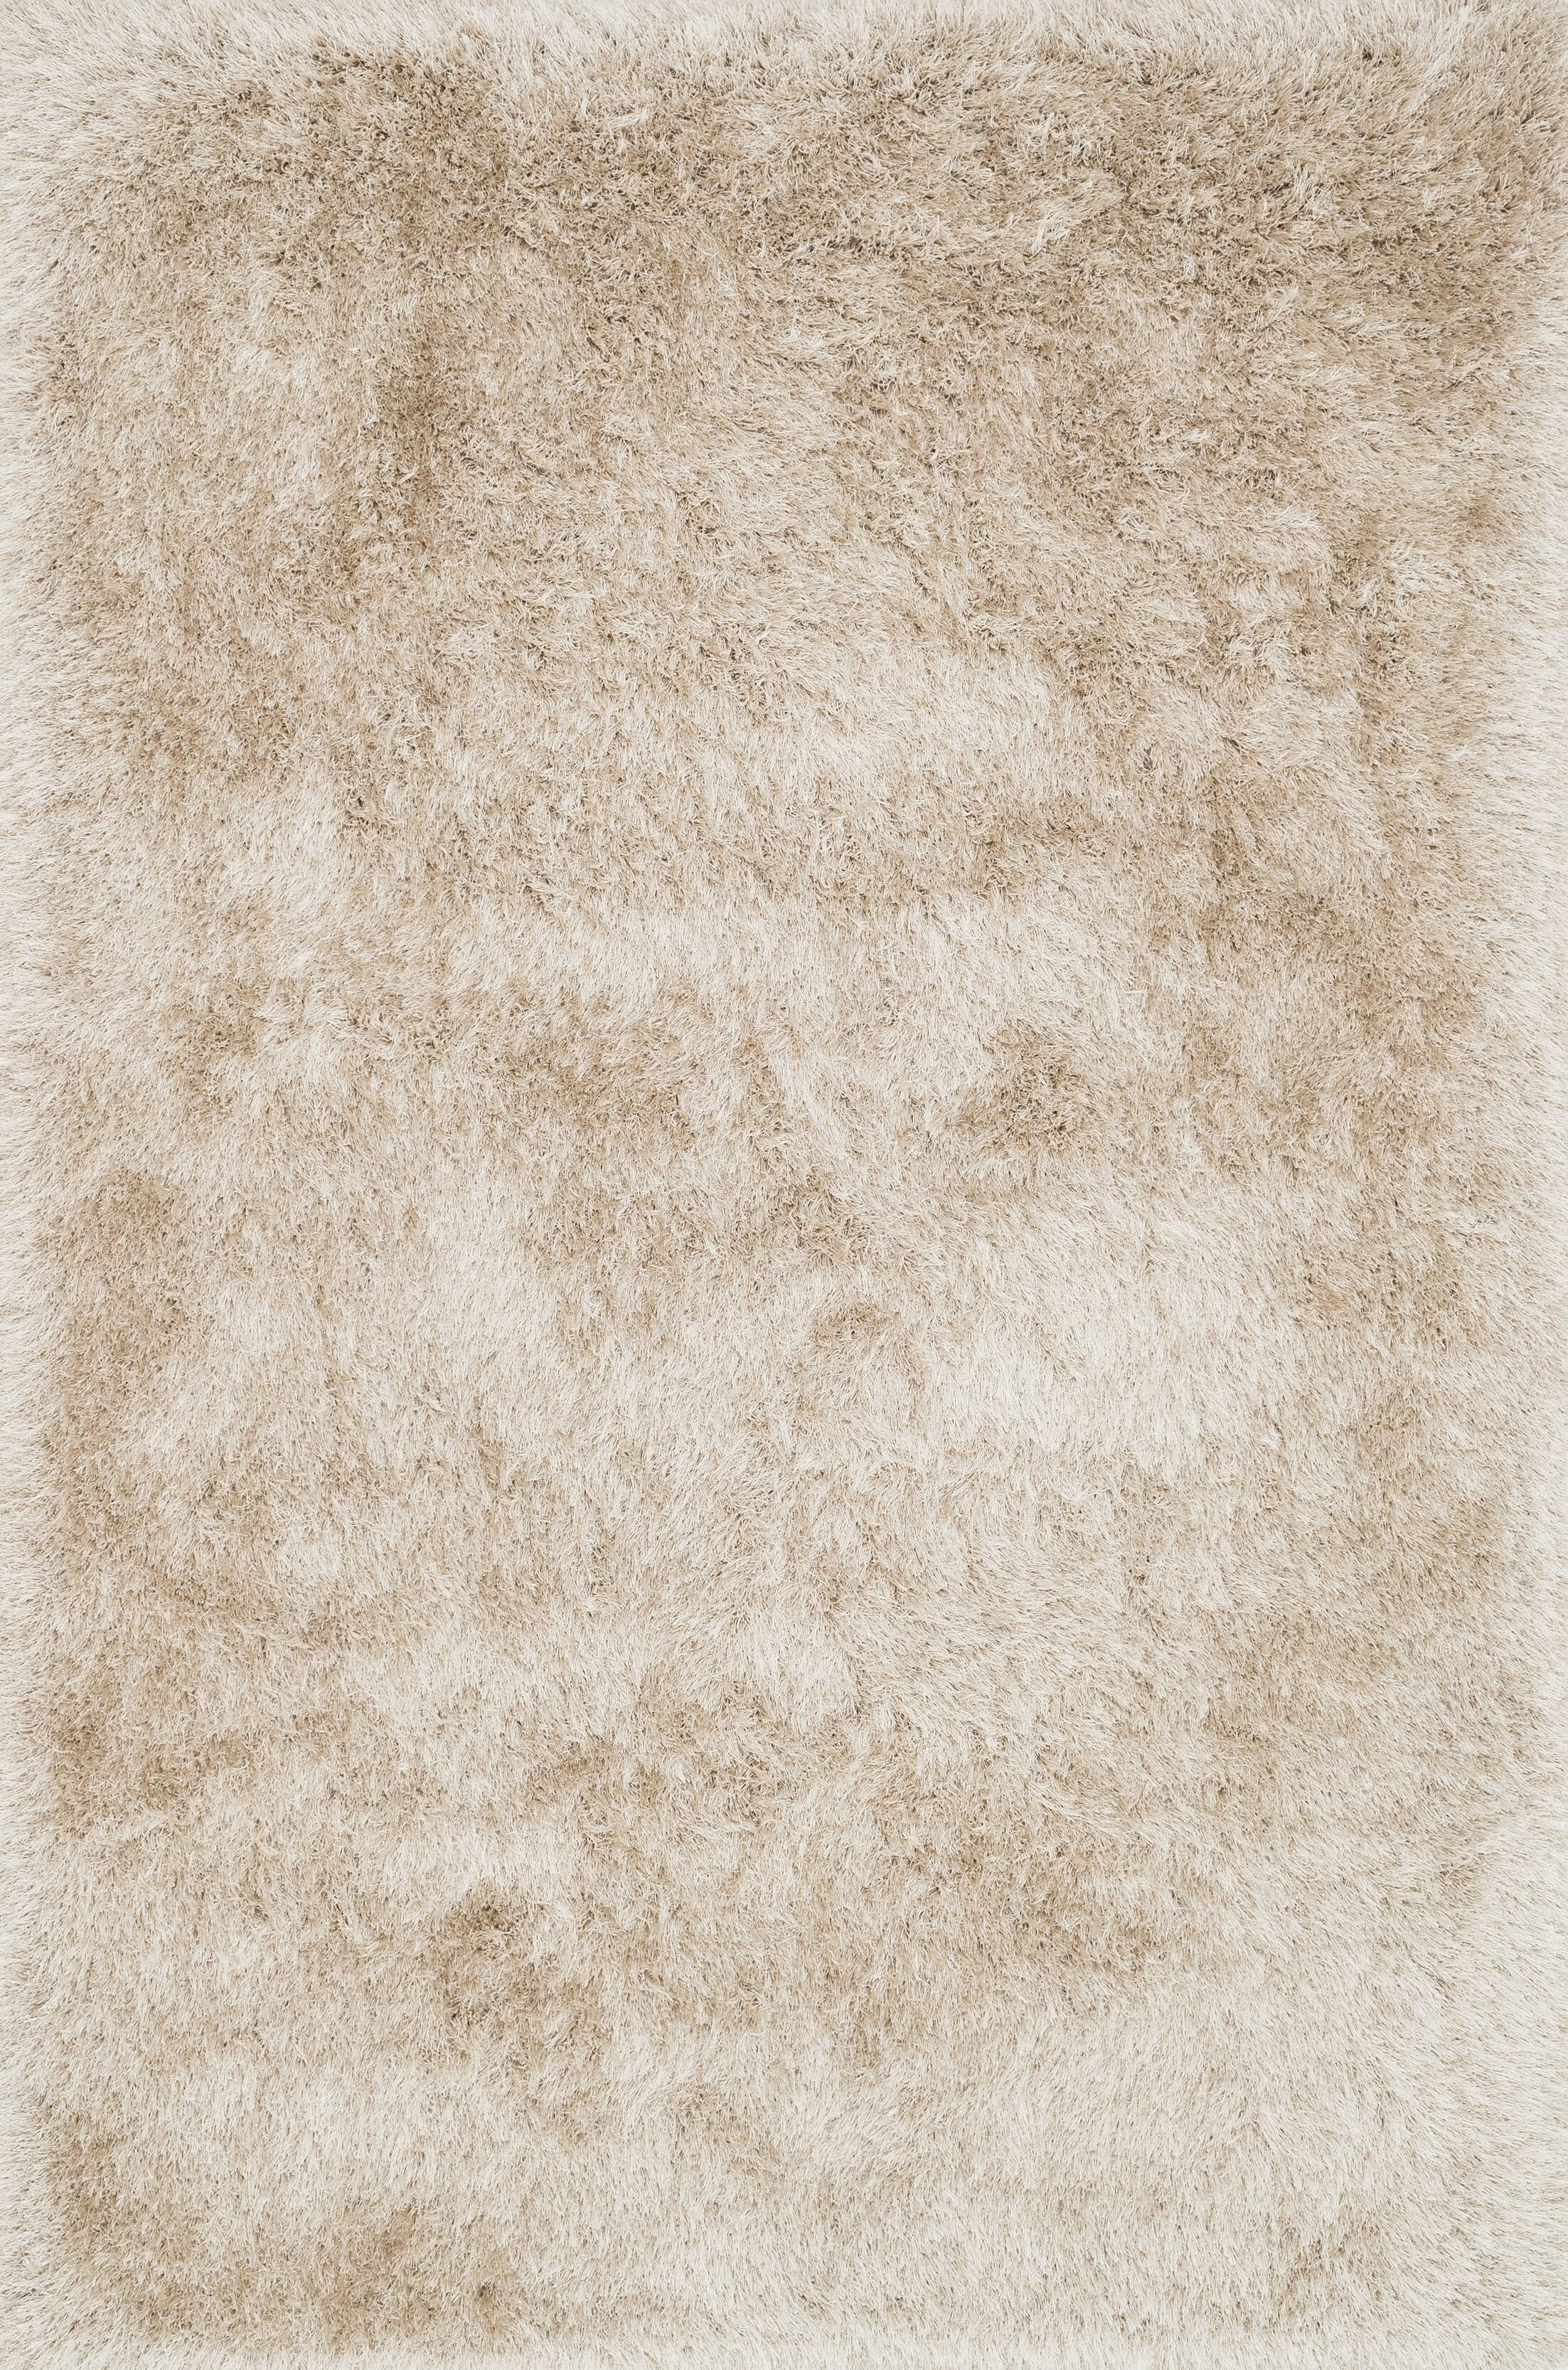 Siipola Shag Hand-Tufted Beige Area Rug Rug Size: Rectangle 5' x 7'6